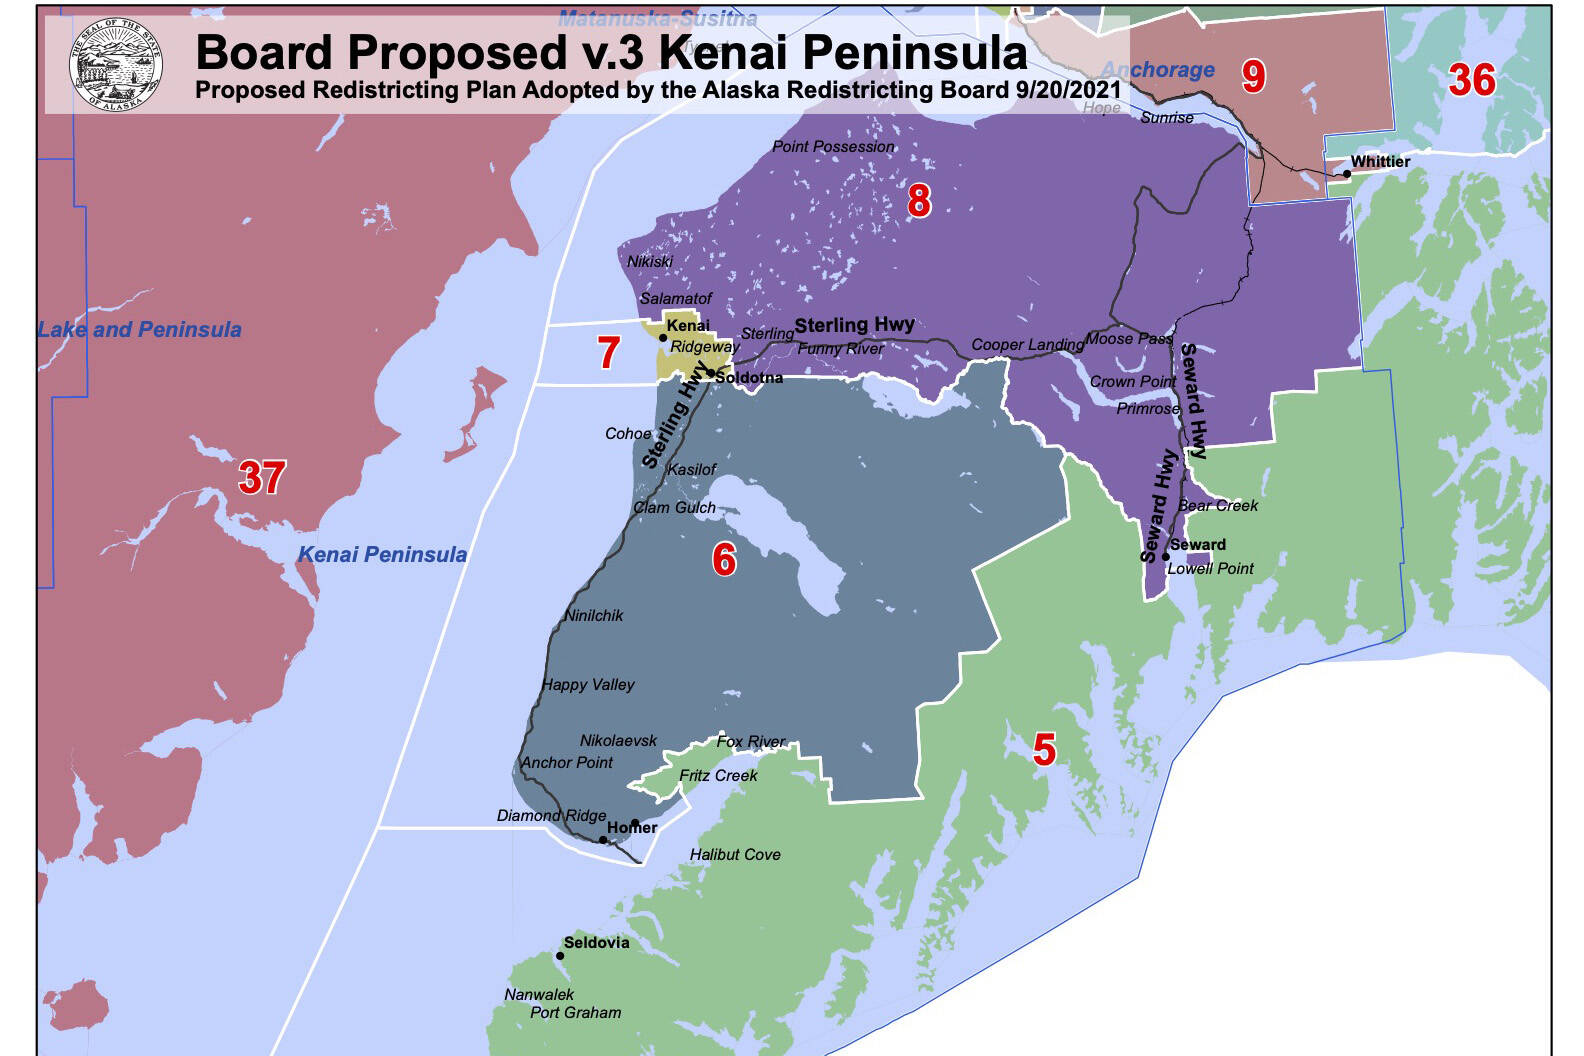 Version 3 of the Alaska Redistricting Board's proposal for the Kenai Peninsula keeps intact most of District 31, now called District 6, but puts the Fritz Creek and Fox River areas into a new District 5 that includes the southern shore of Kachemak Bay and Kodiak Island. (Photo courtesy of Alaska Redistricting Board)